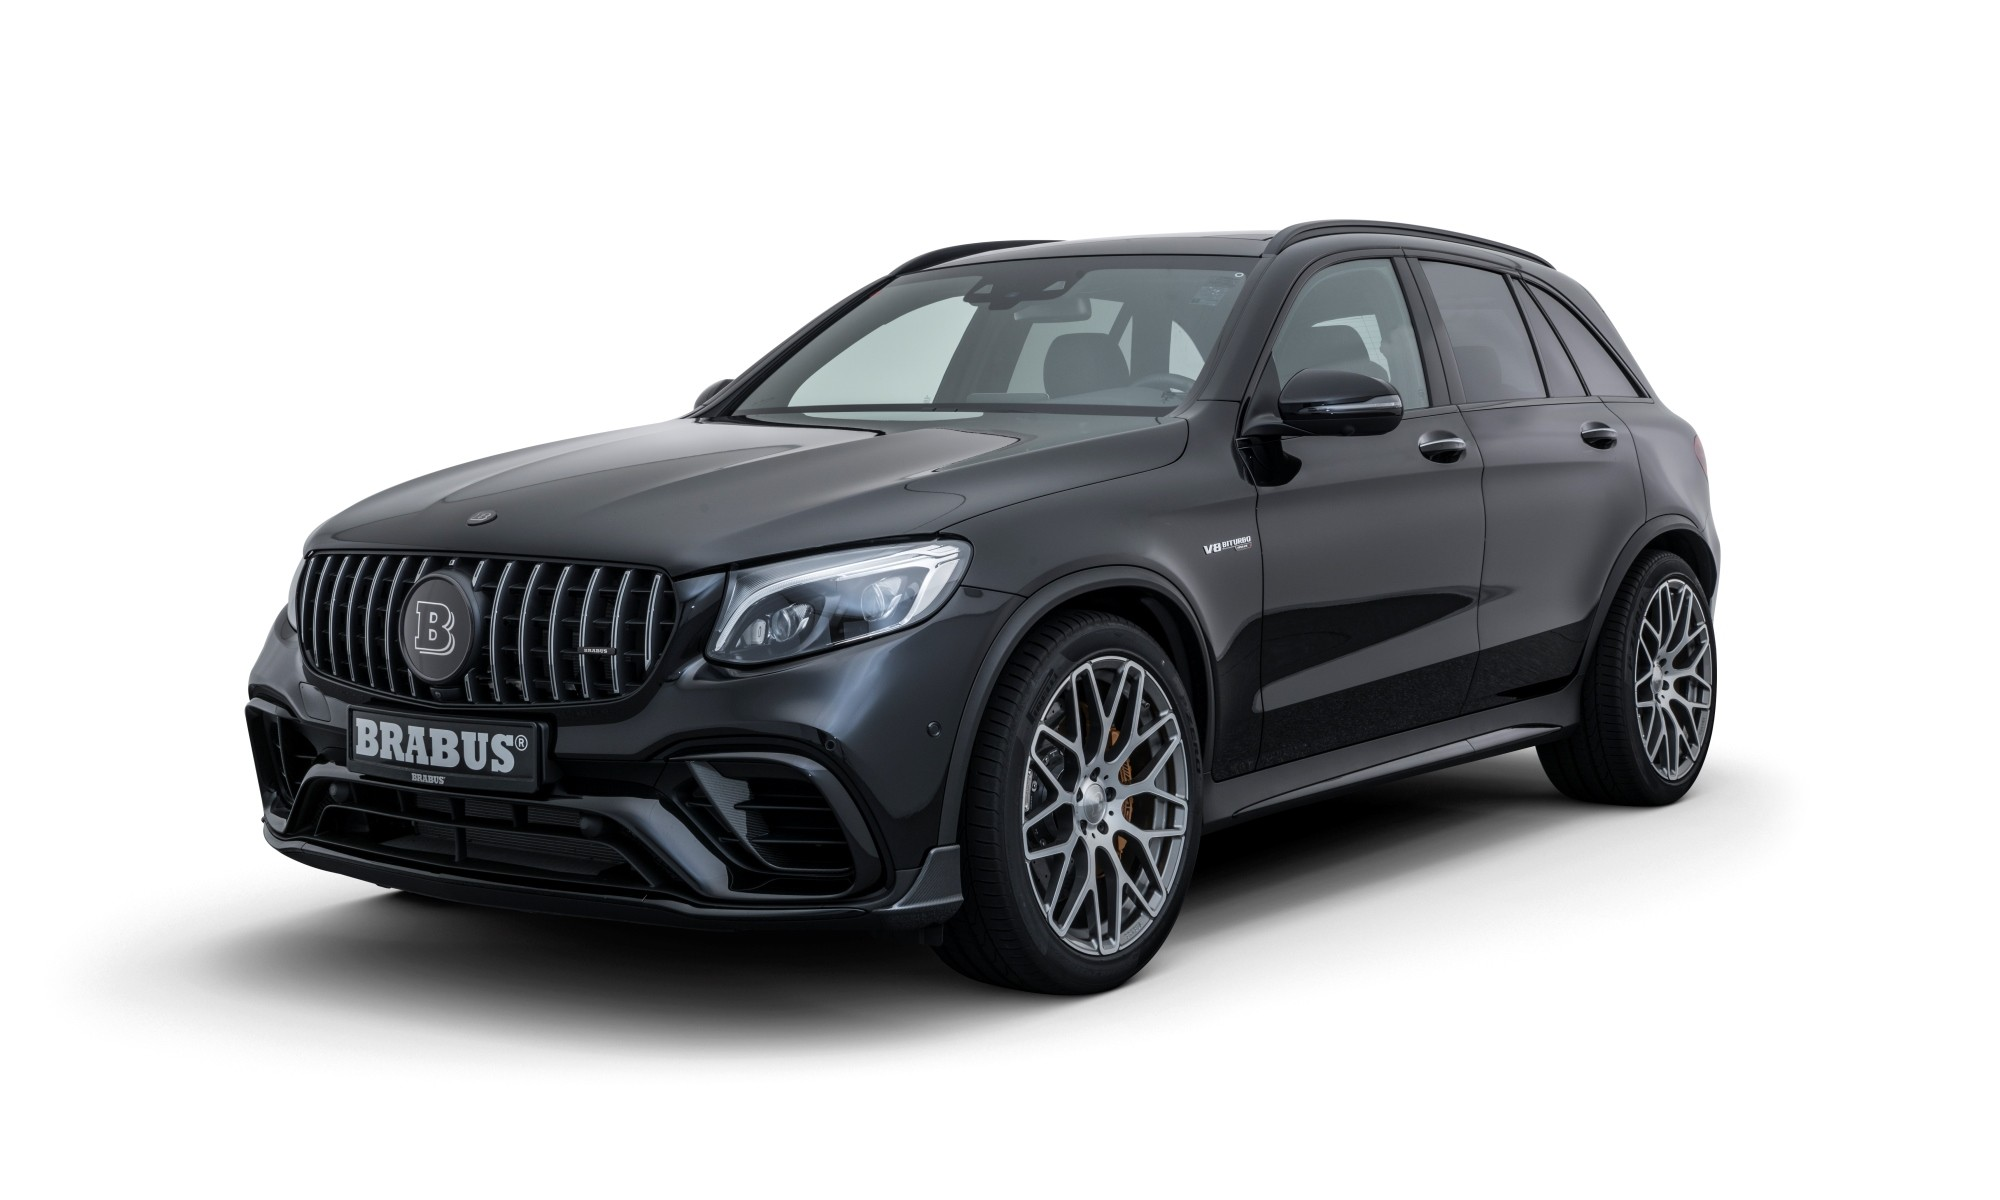 Brabus 600 Compact SUV has a restyled front bumper